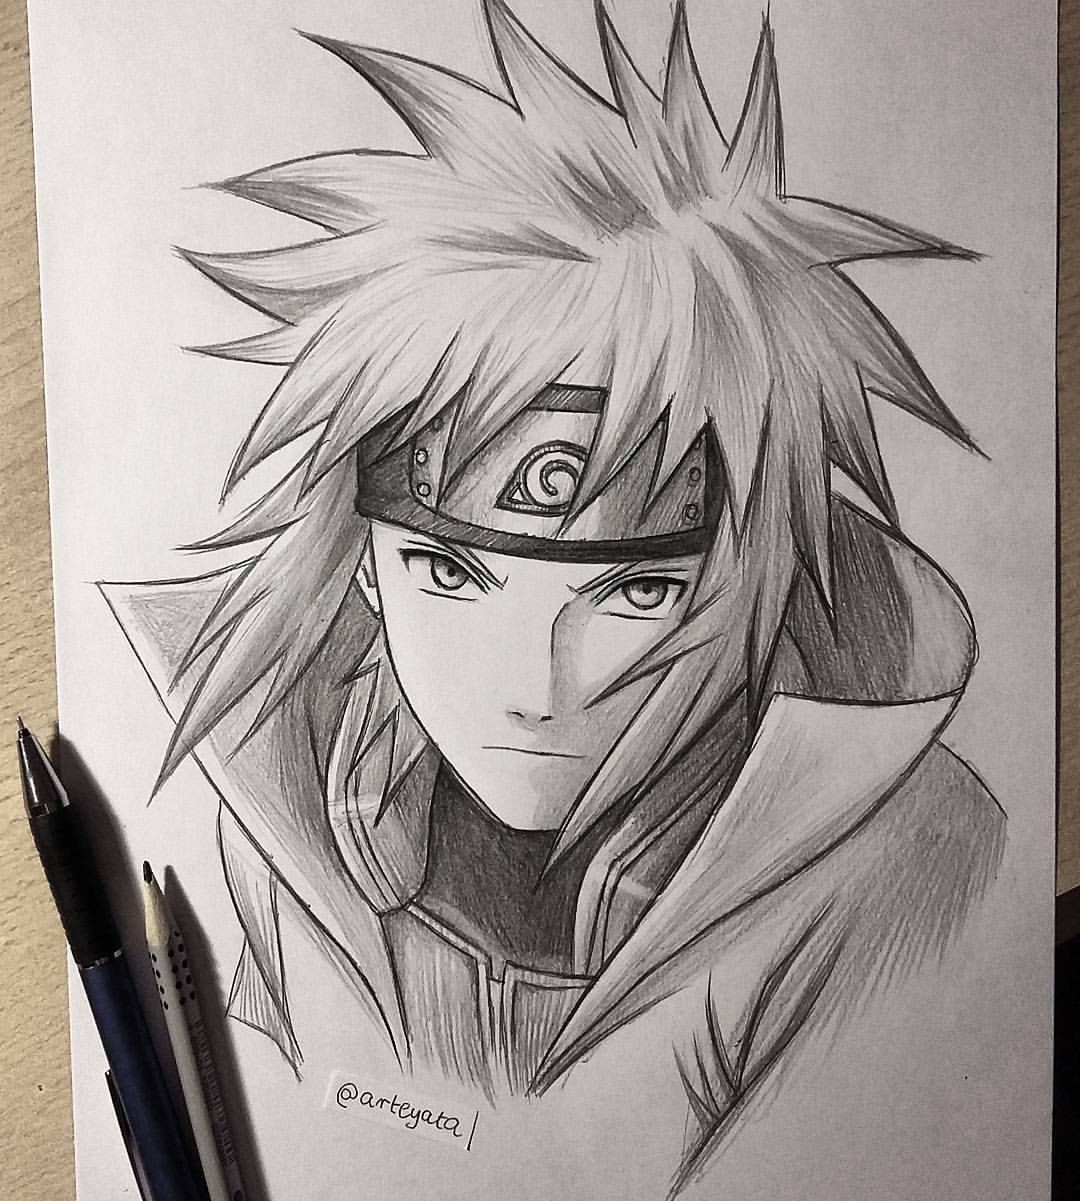 30 min sketch of Minato⚡ hope you like it! My school is